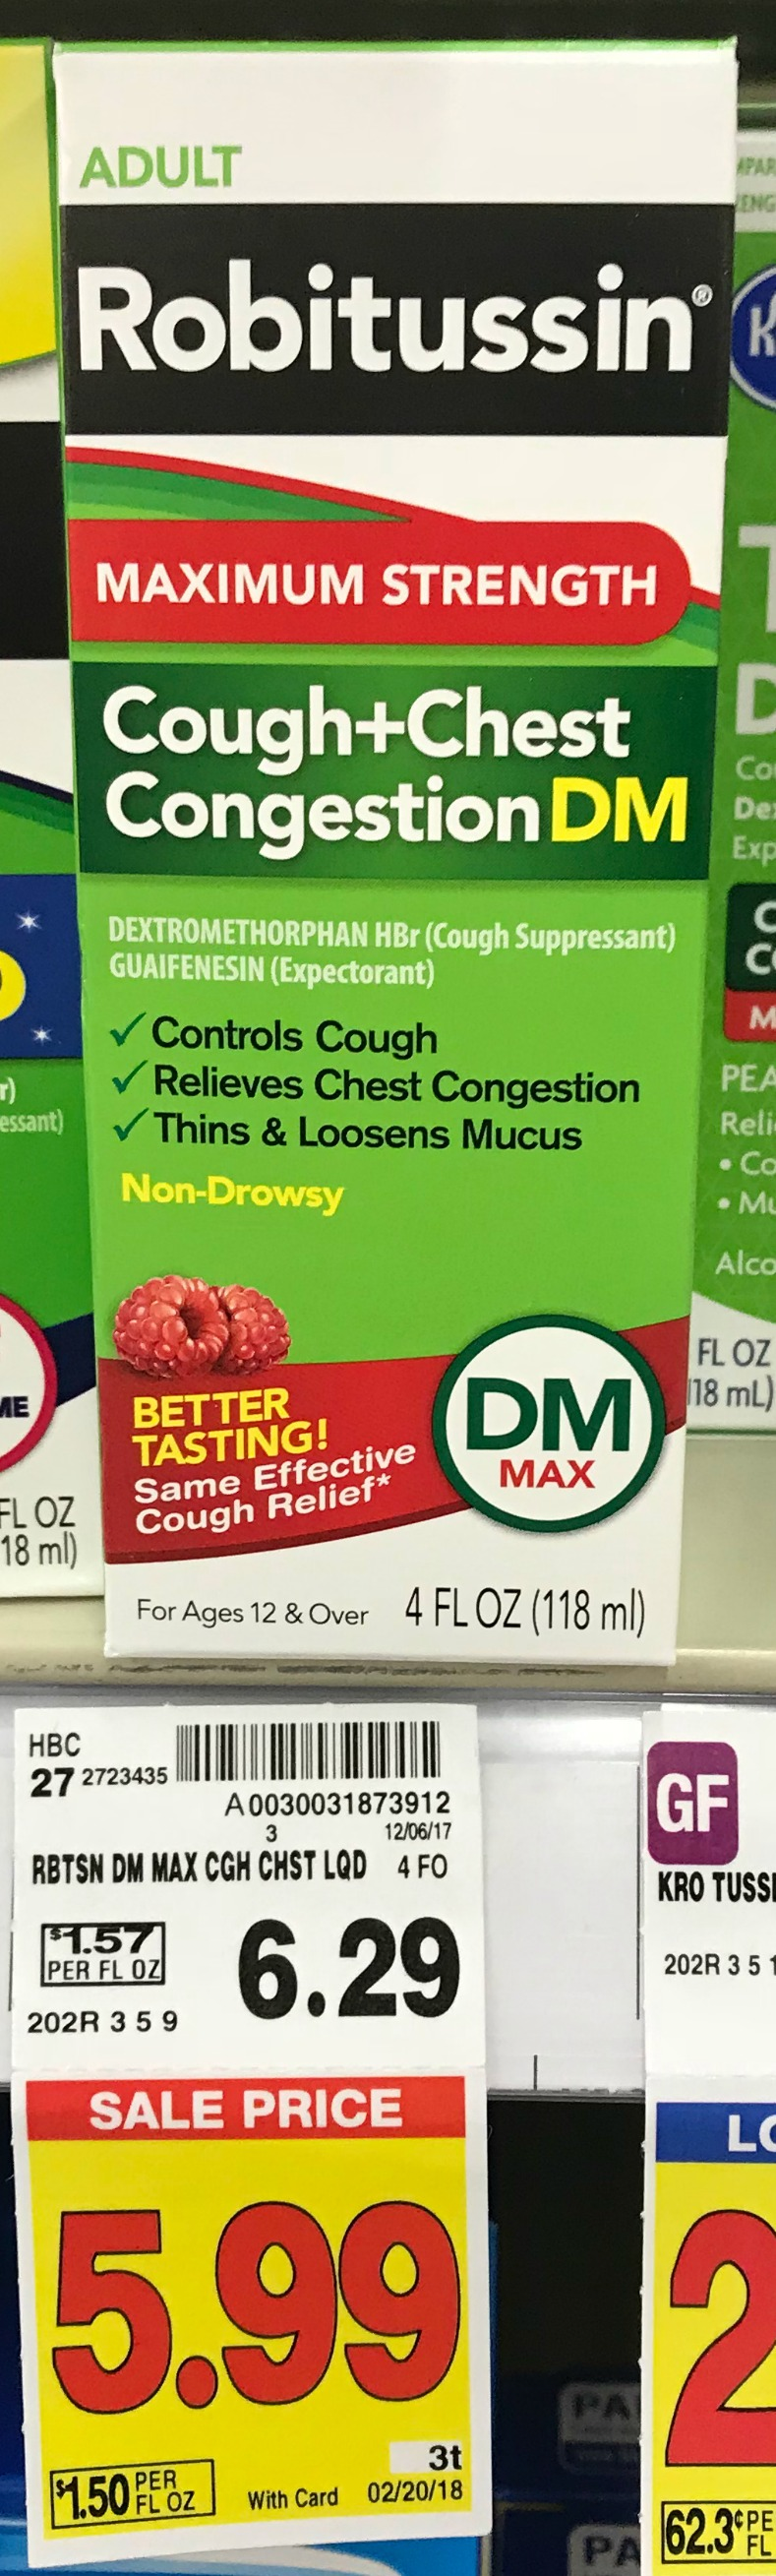 Robitussin coupons 2018